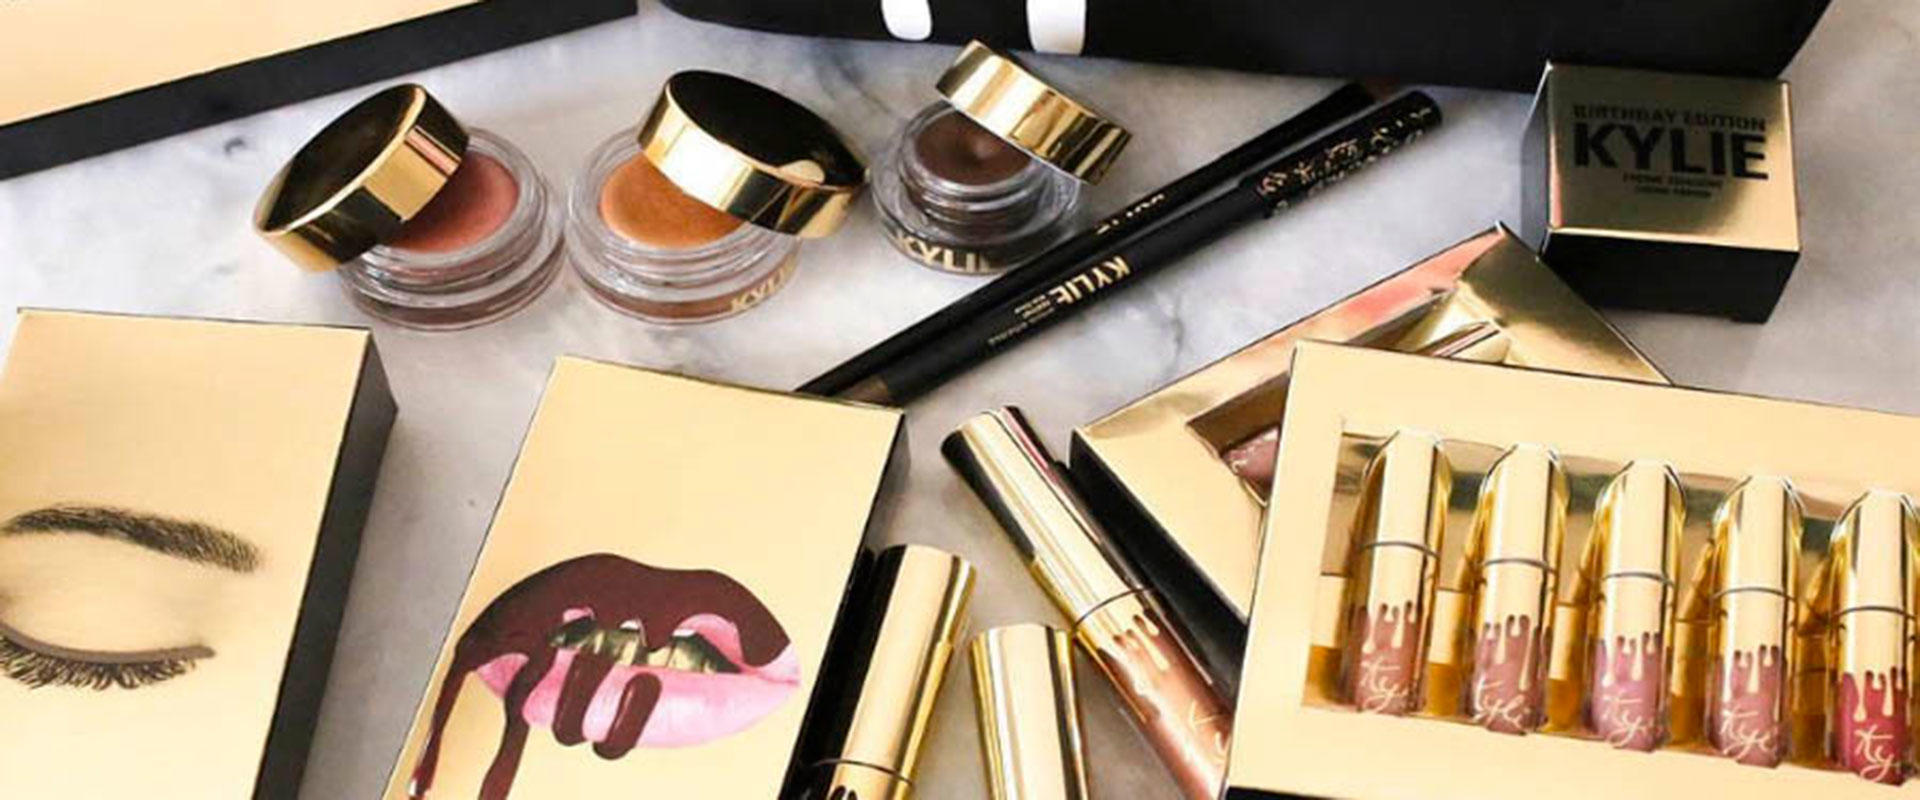 Kylie Jenner Birthday Makeup Collection